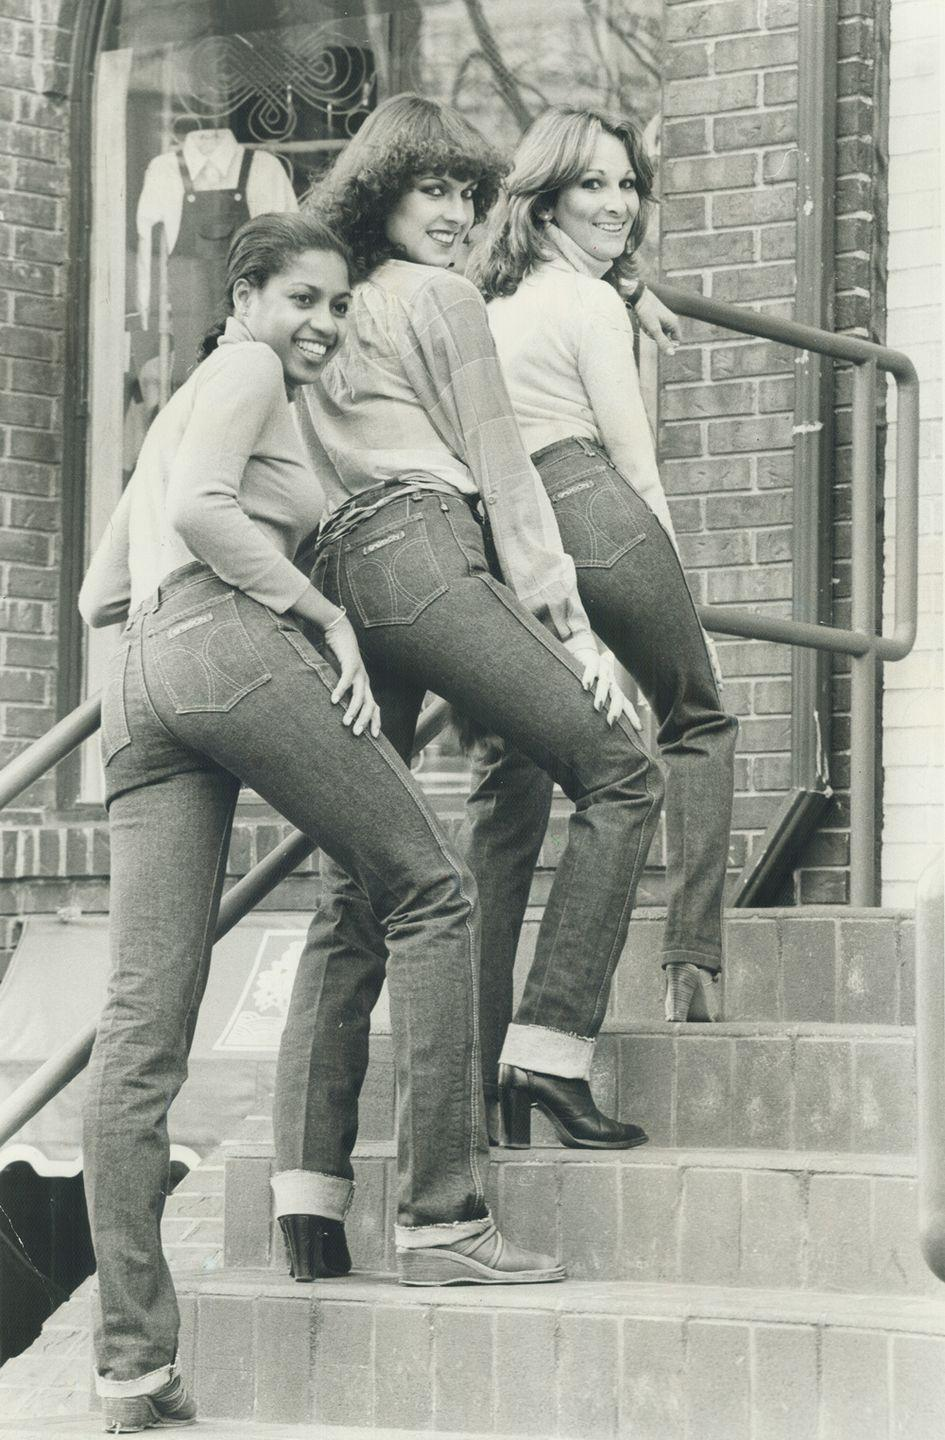 <p>Models wearing Sasson jeans, which were known for being skintight (especially in the waist). </p>